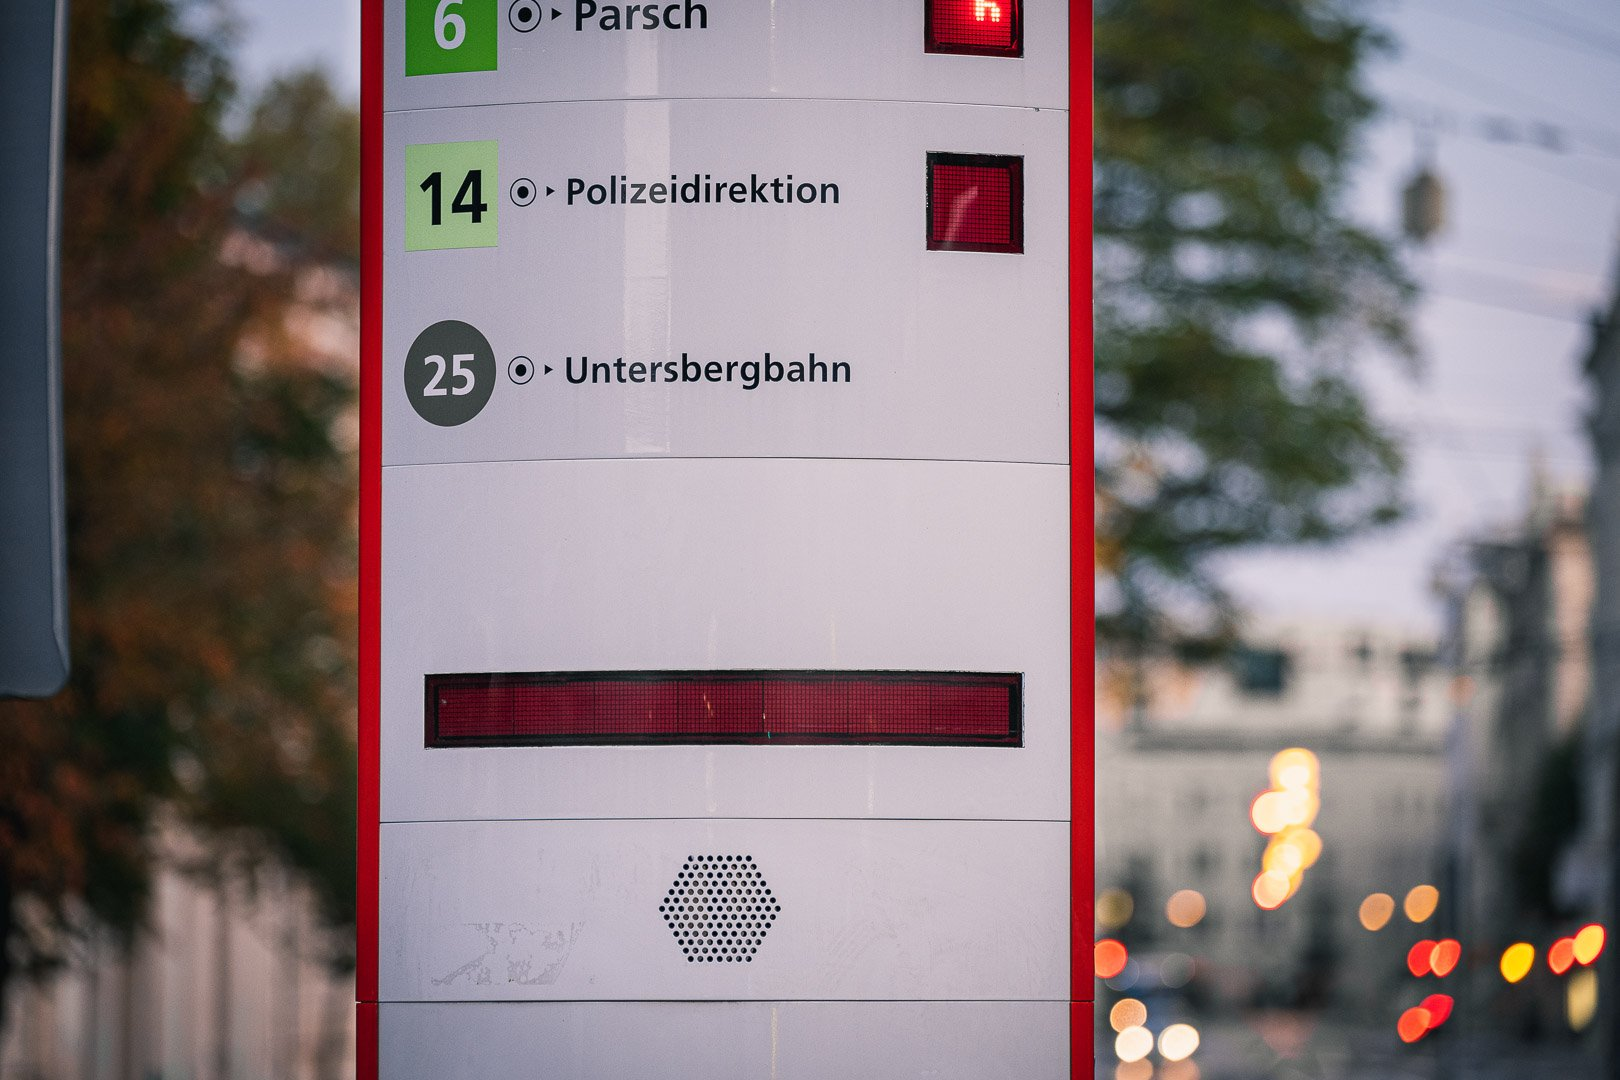 Sign for bus 25 at Mirabell square